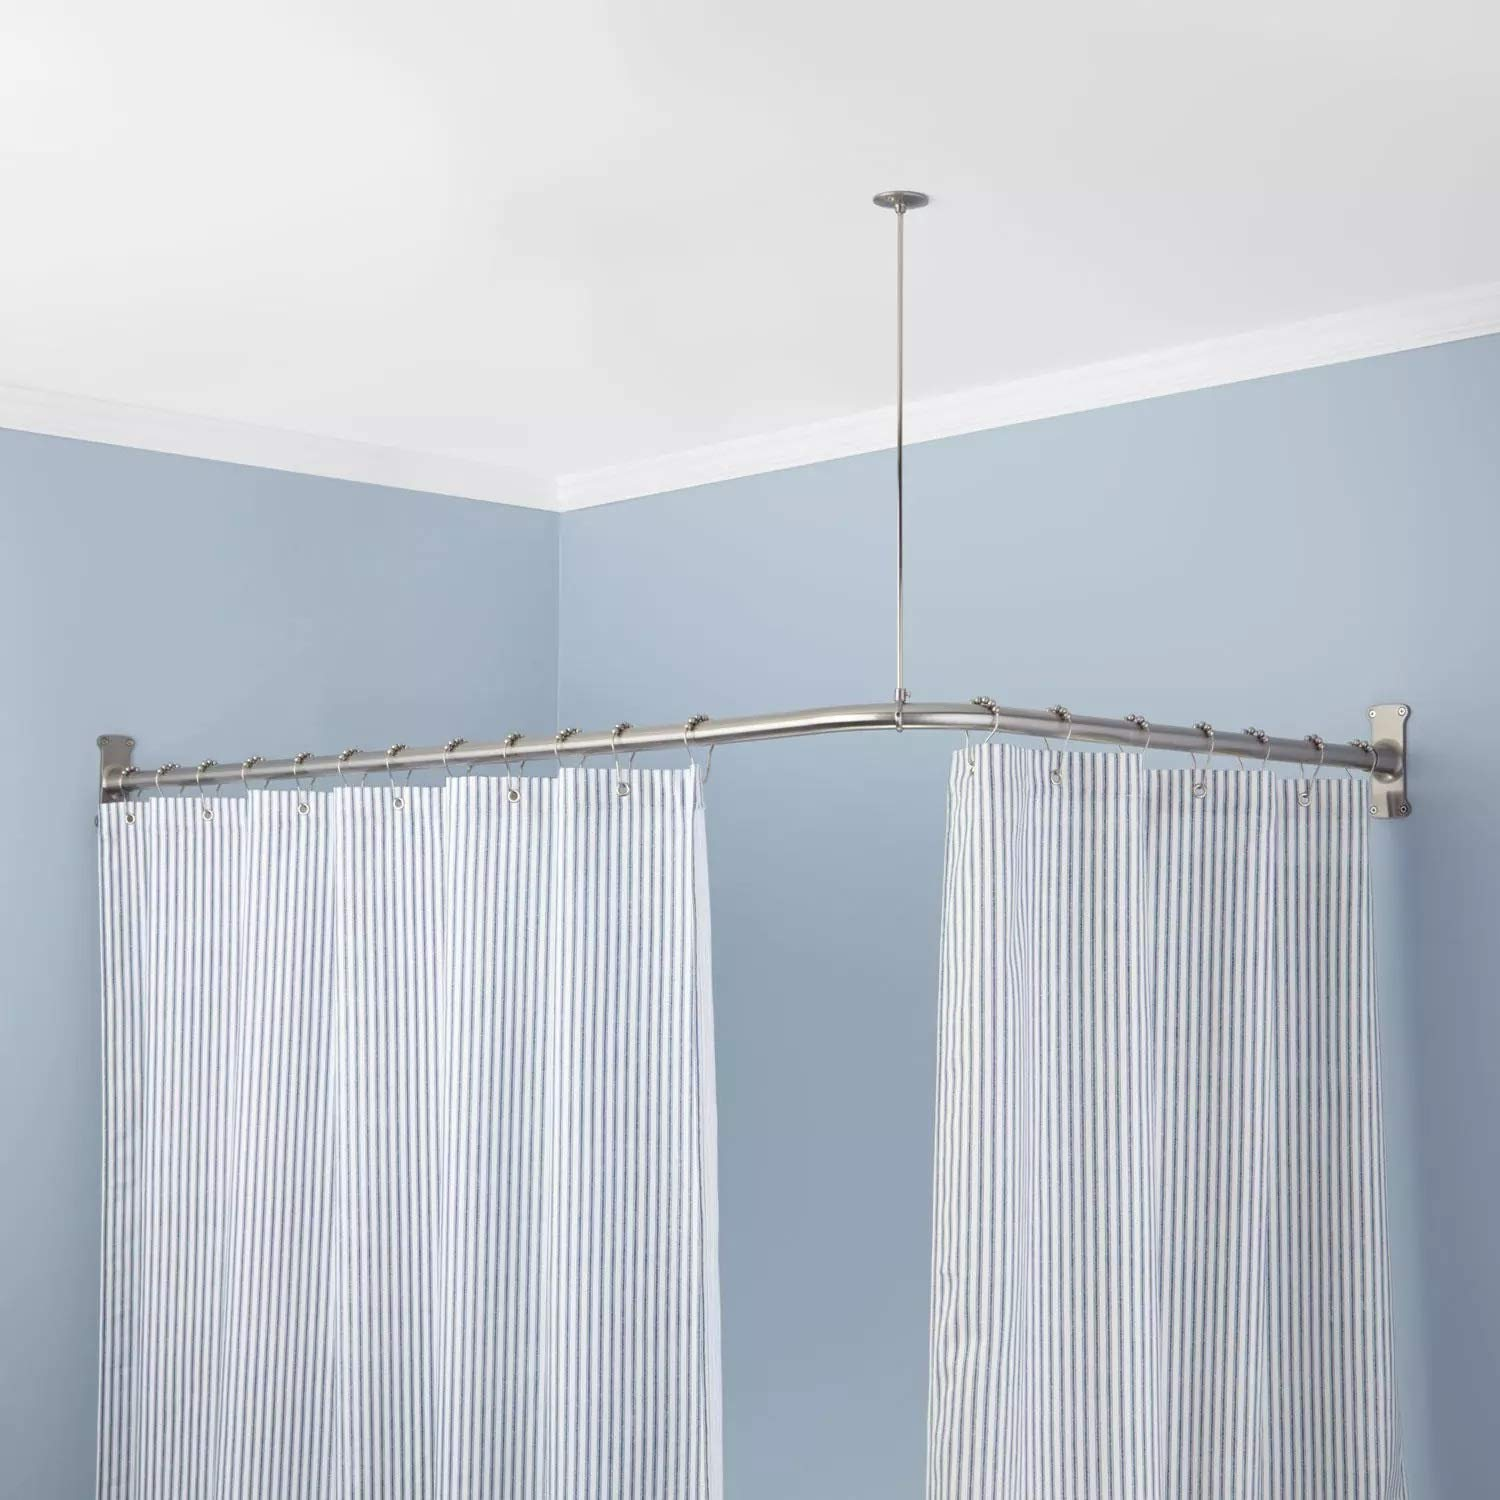 Naiture Stainless Steel 36'' x 36'' Corner Shower Curtain Rod with Ceiling Support, Chrome Finish